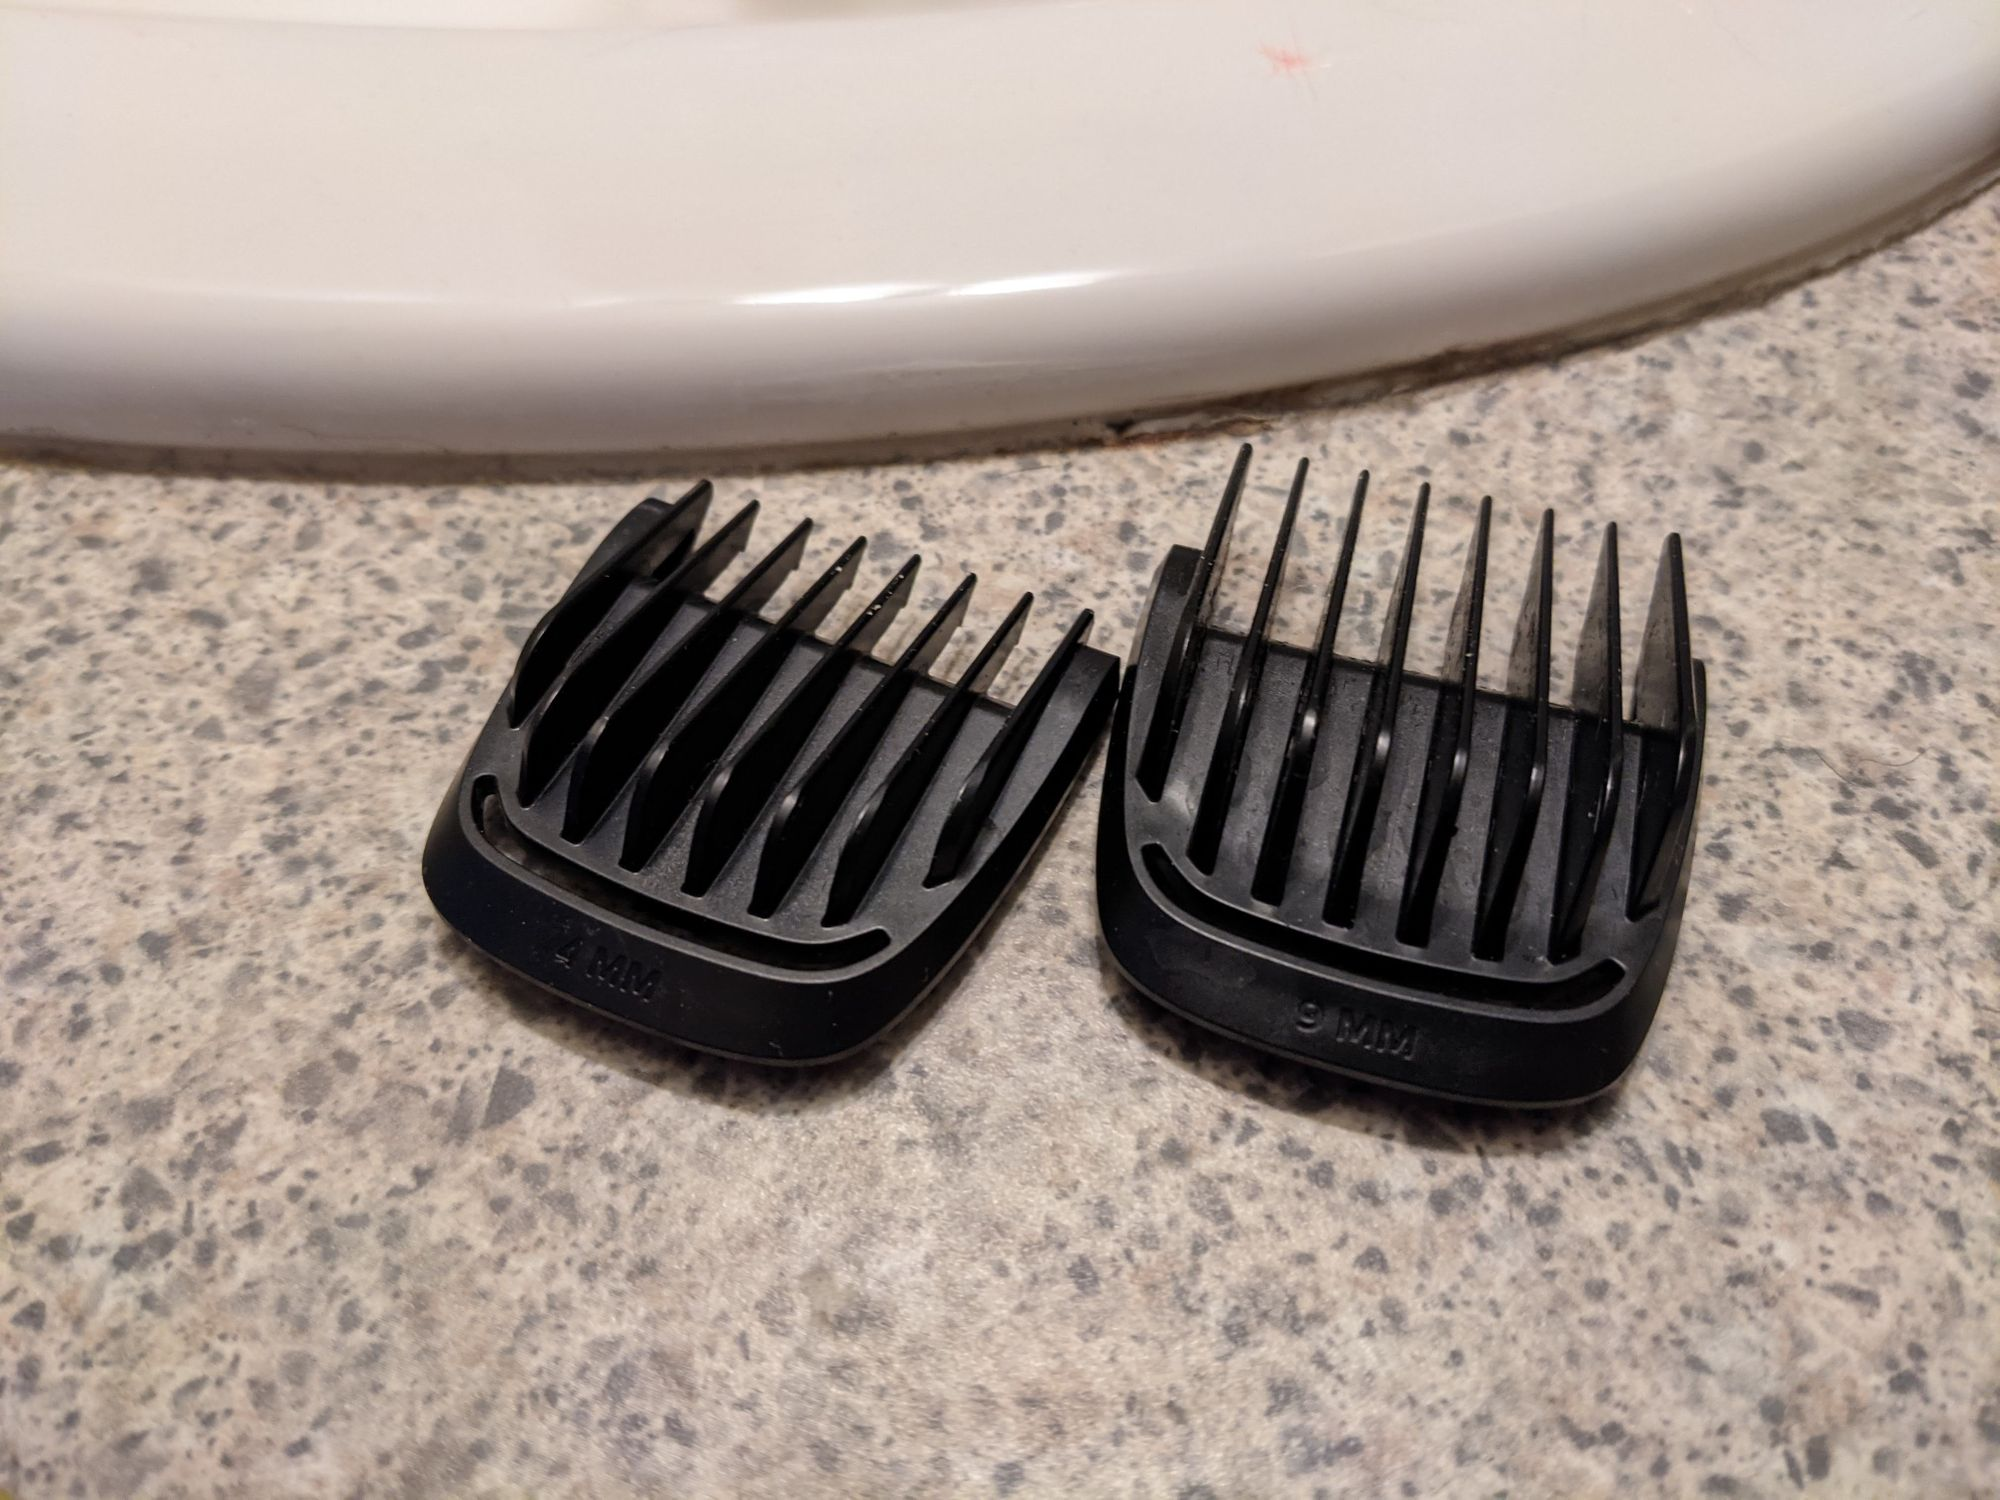 Two black clipper guards sitting on a bathroom counter.